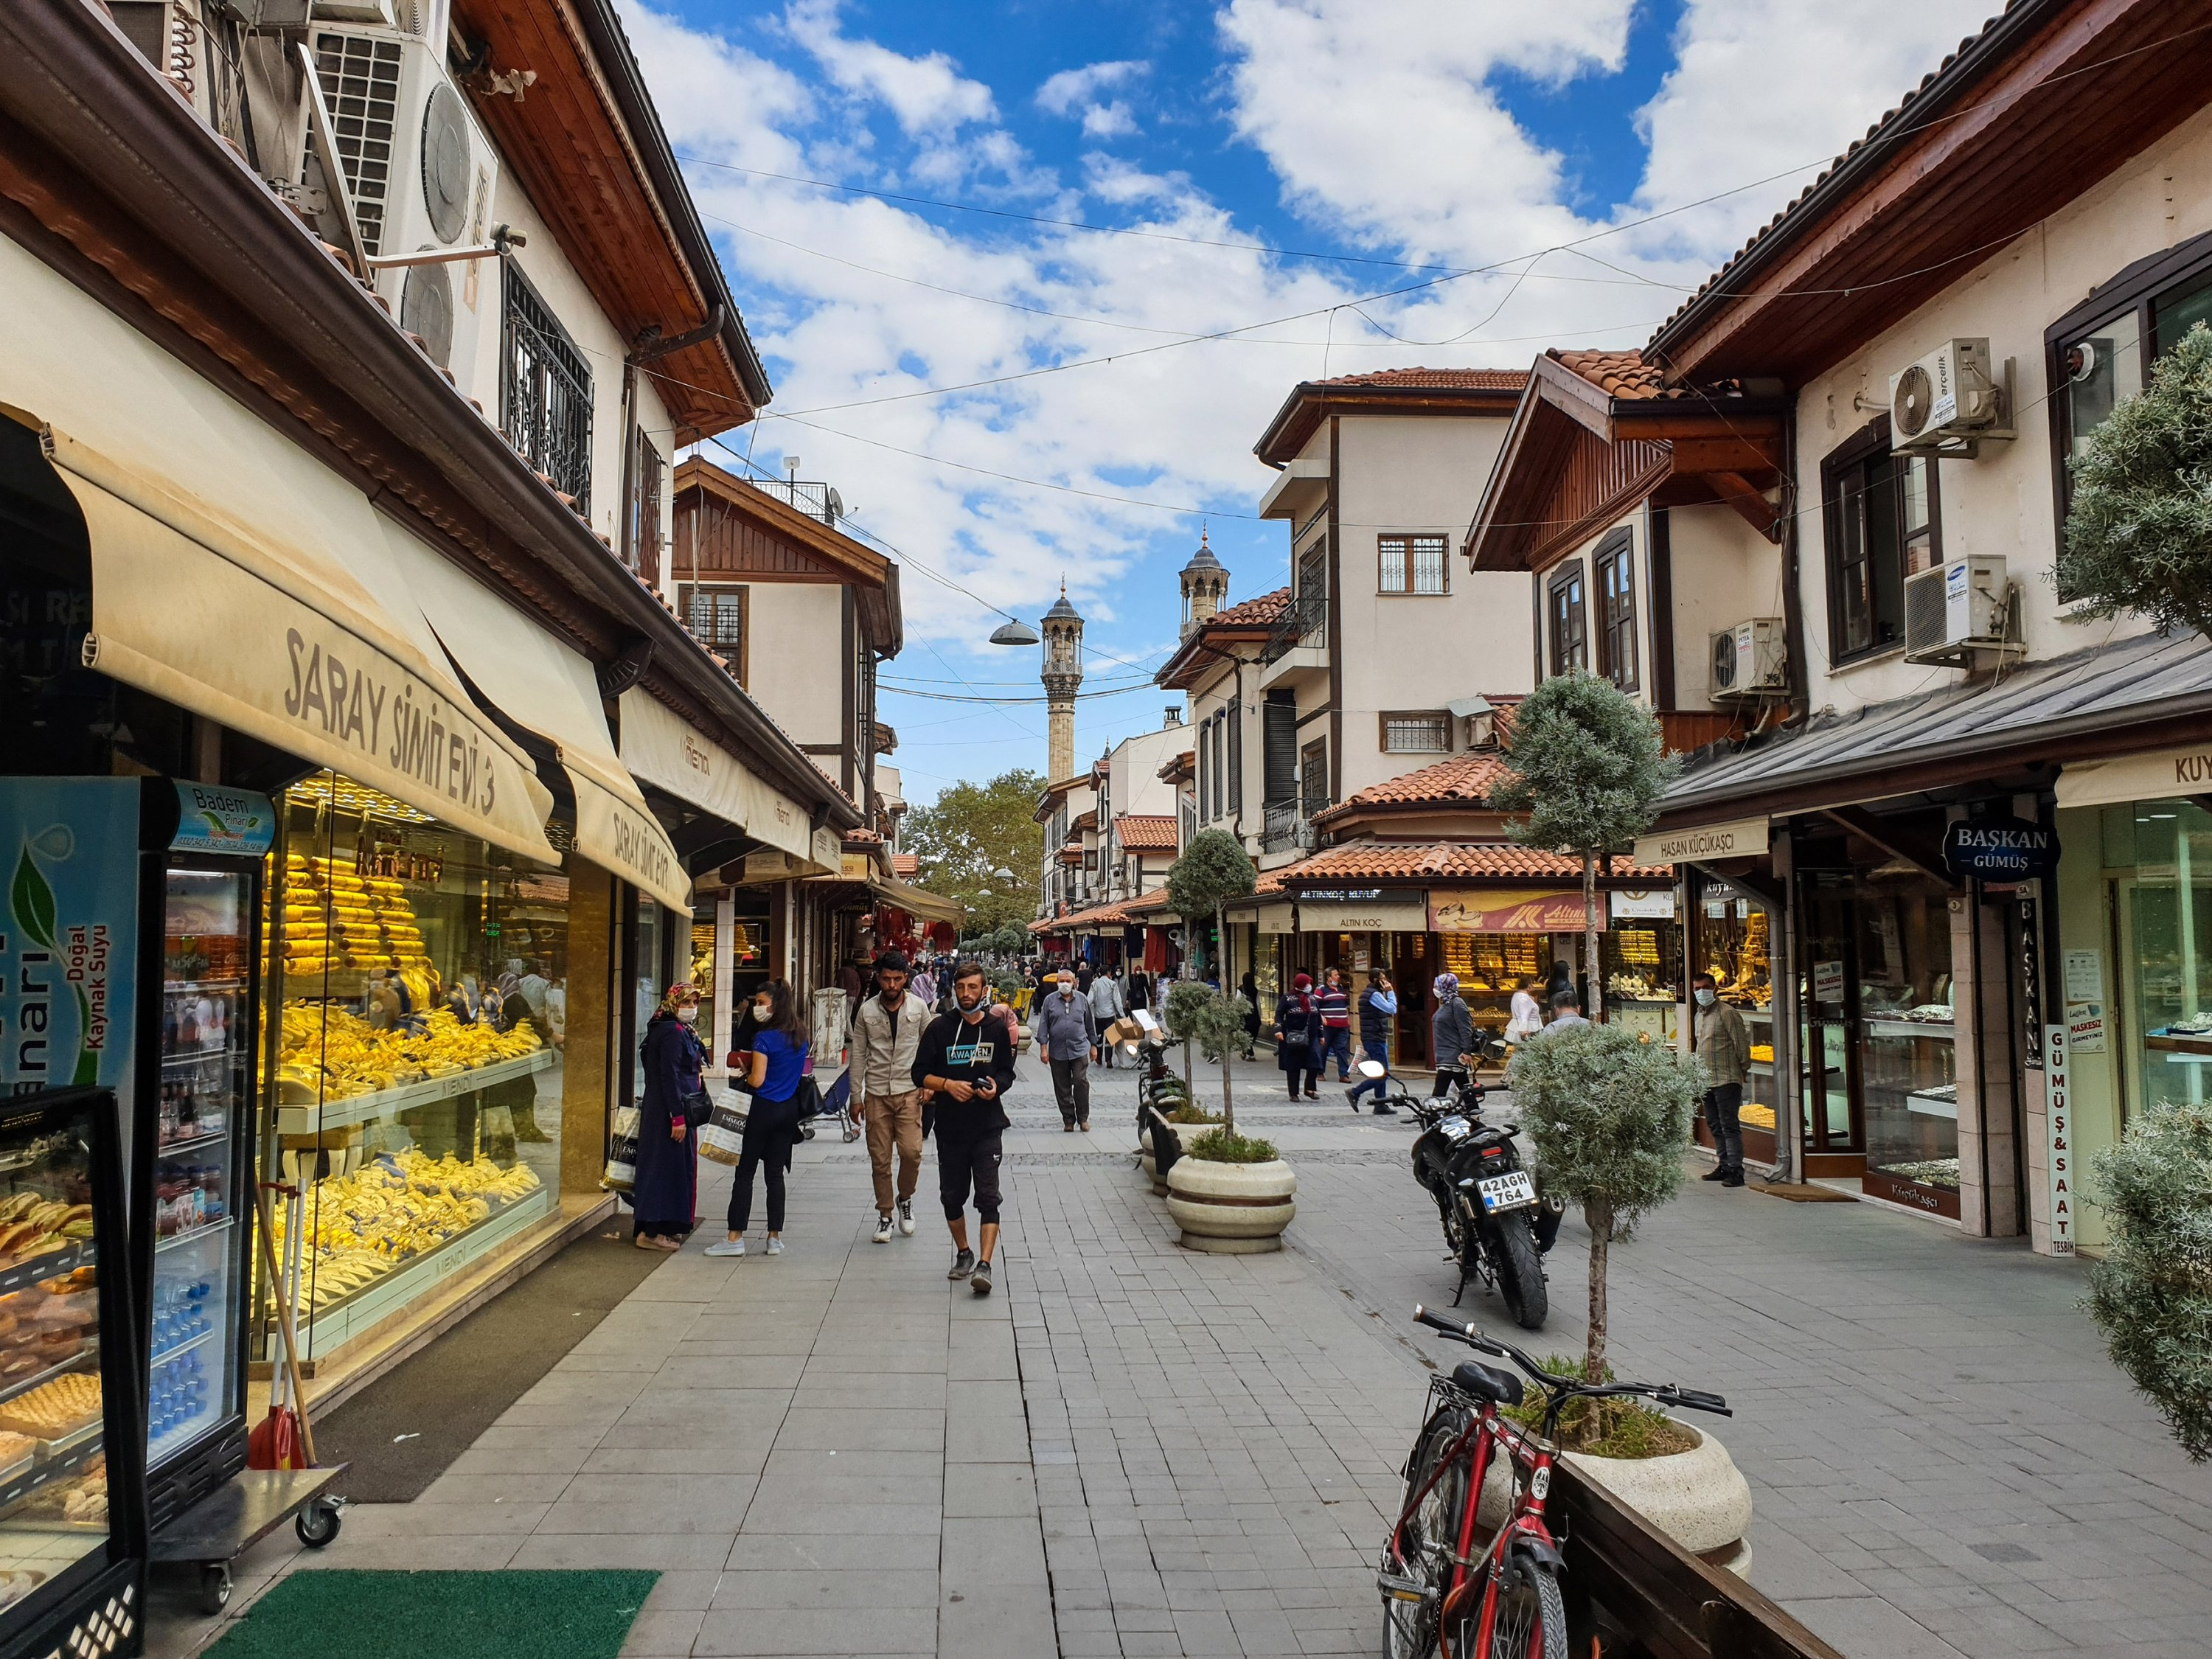 The Grand Bazaar of Konya is situated in a historic area of the city. (Photo by Argun Konuk)